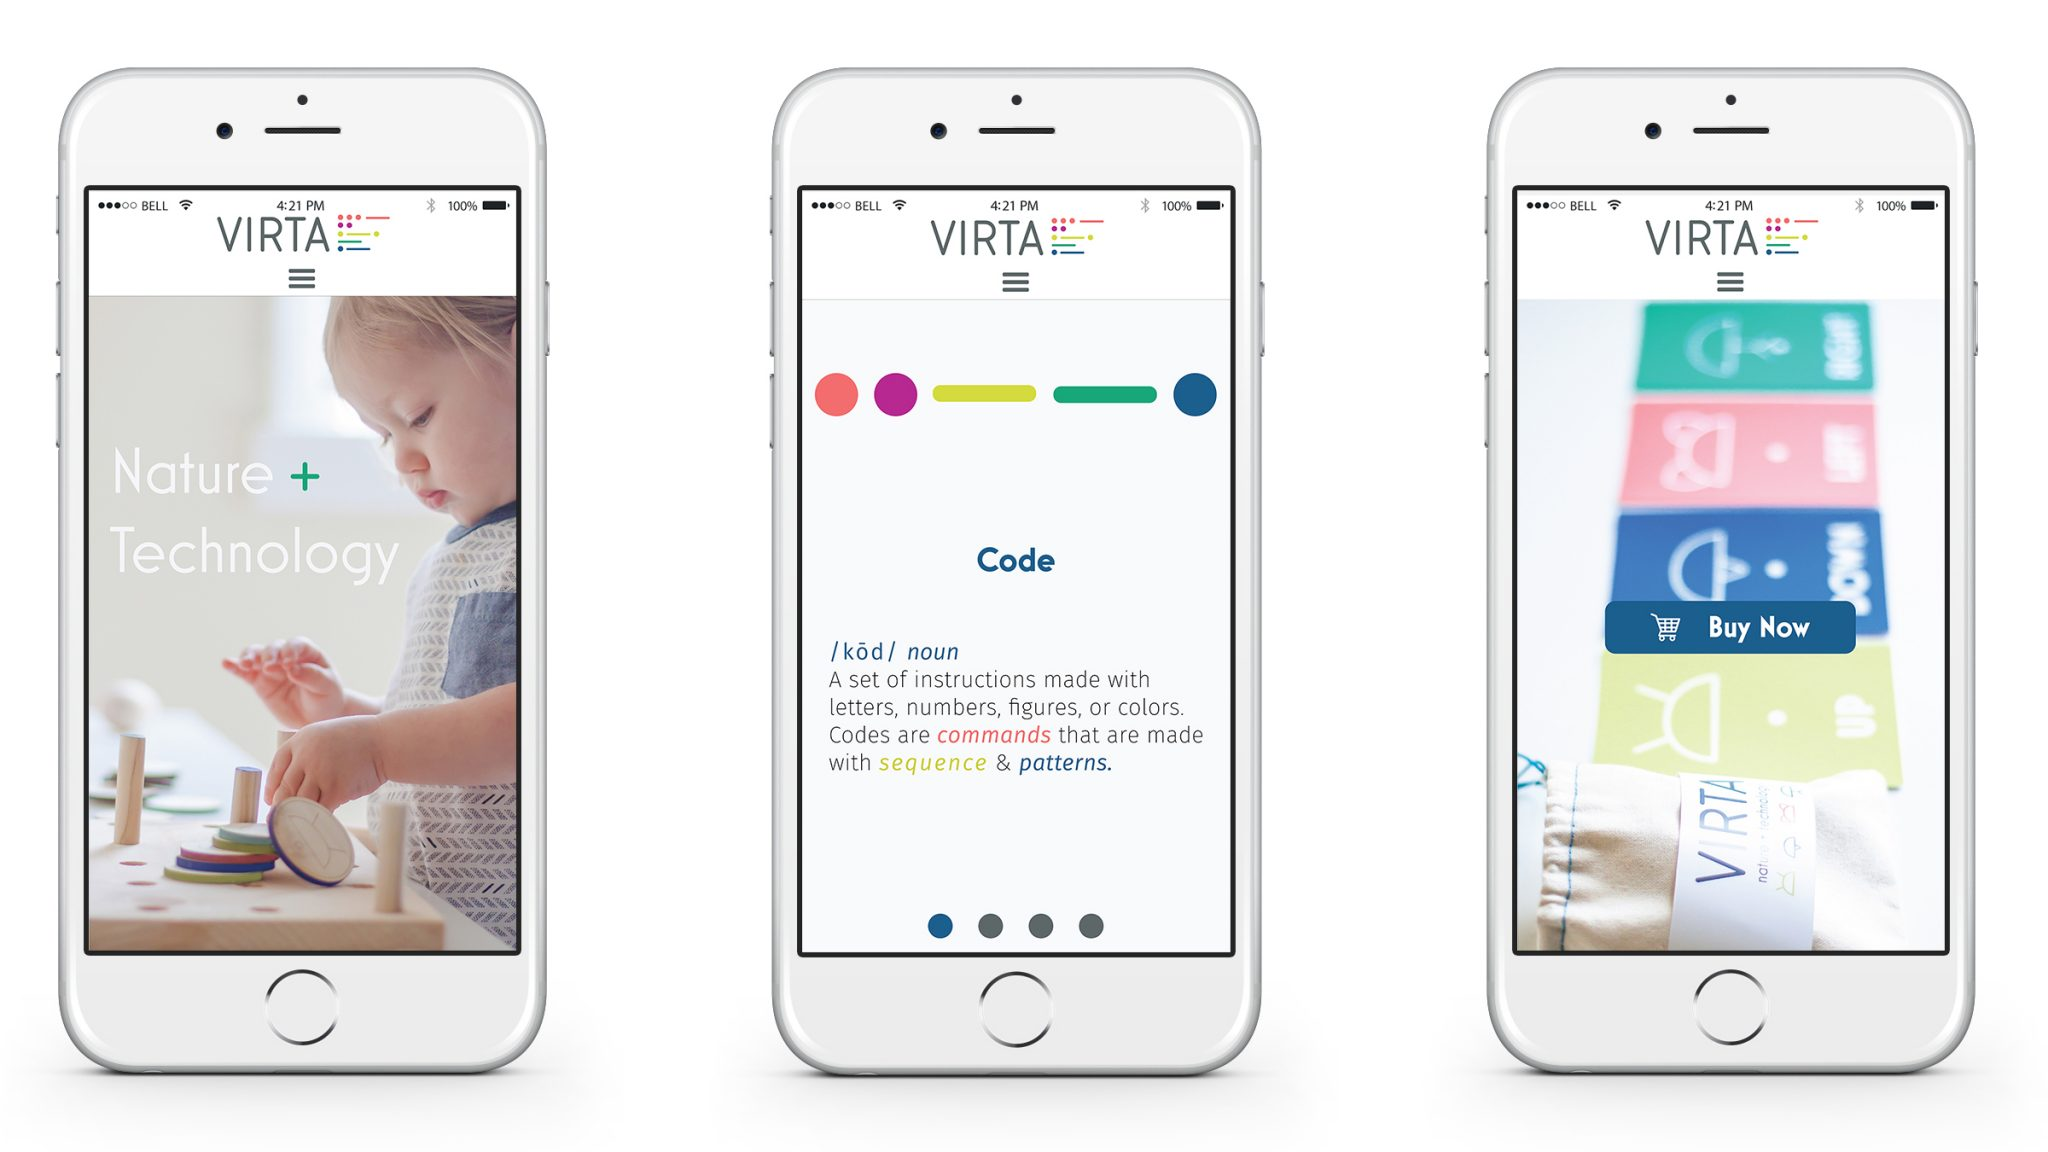 Virta Mobile Website Design